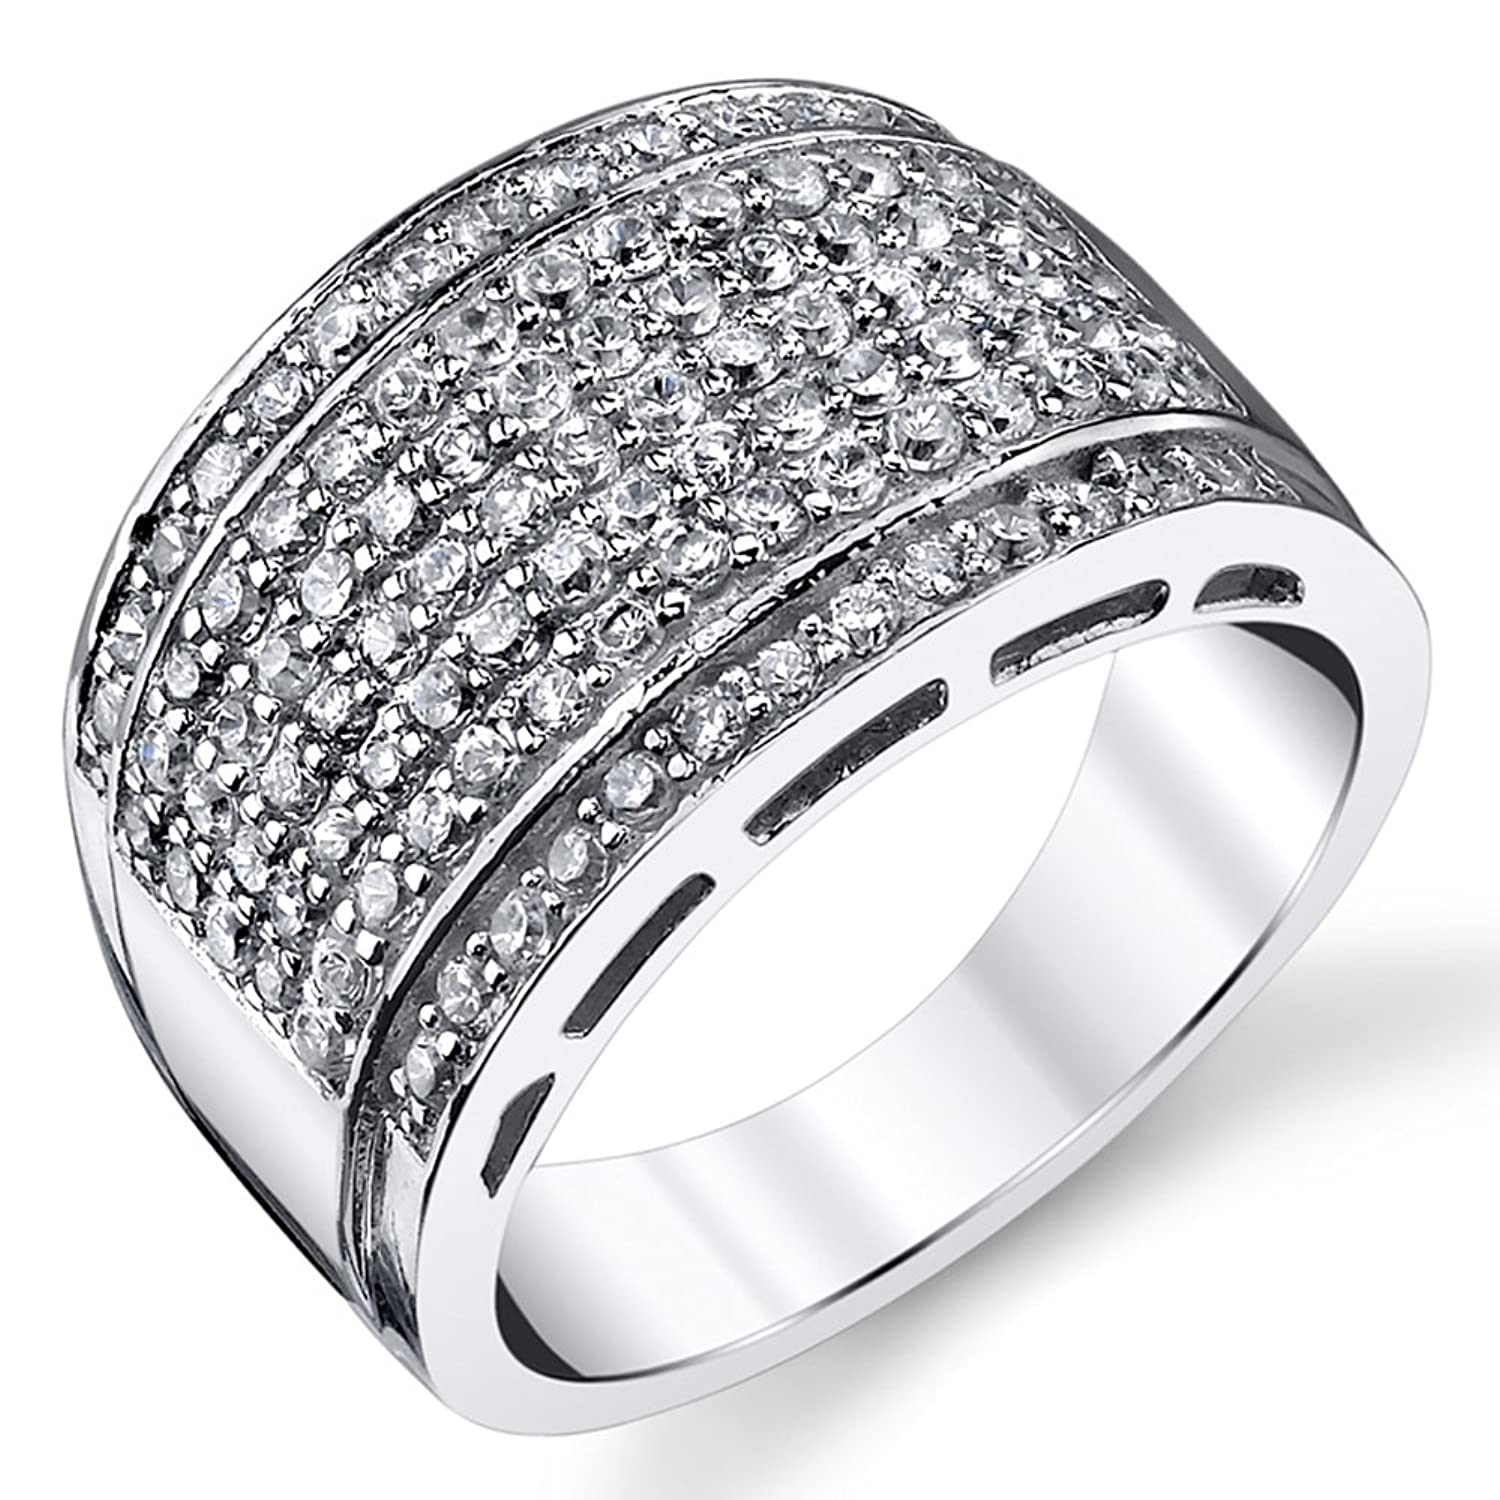 round brilliant product cut white in wedding bands band gold pave diamonds modern home